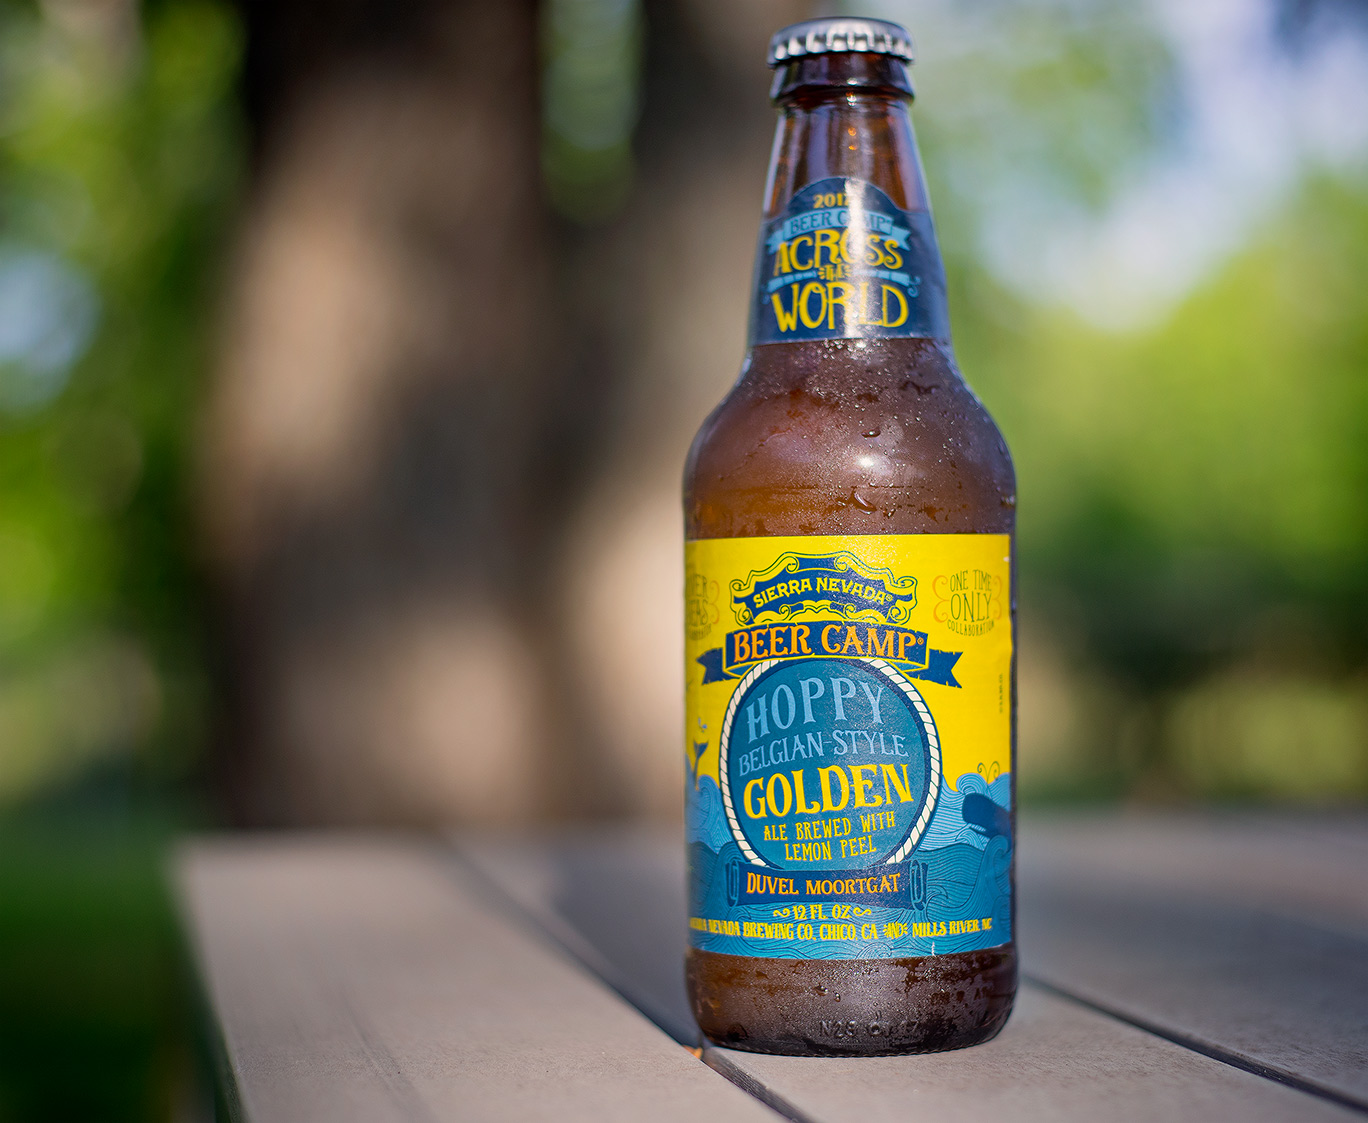 Sierra Nevada Beer Camp: Hoppy Belgian-style Golden Ale